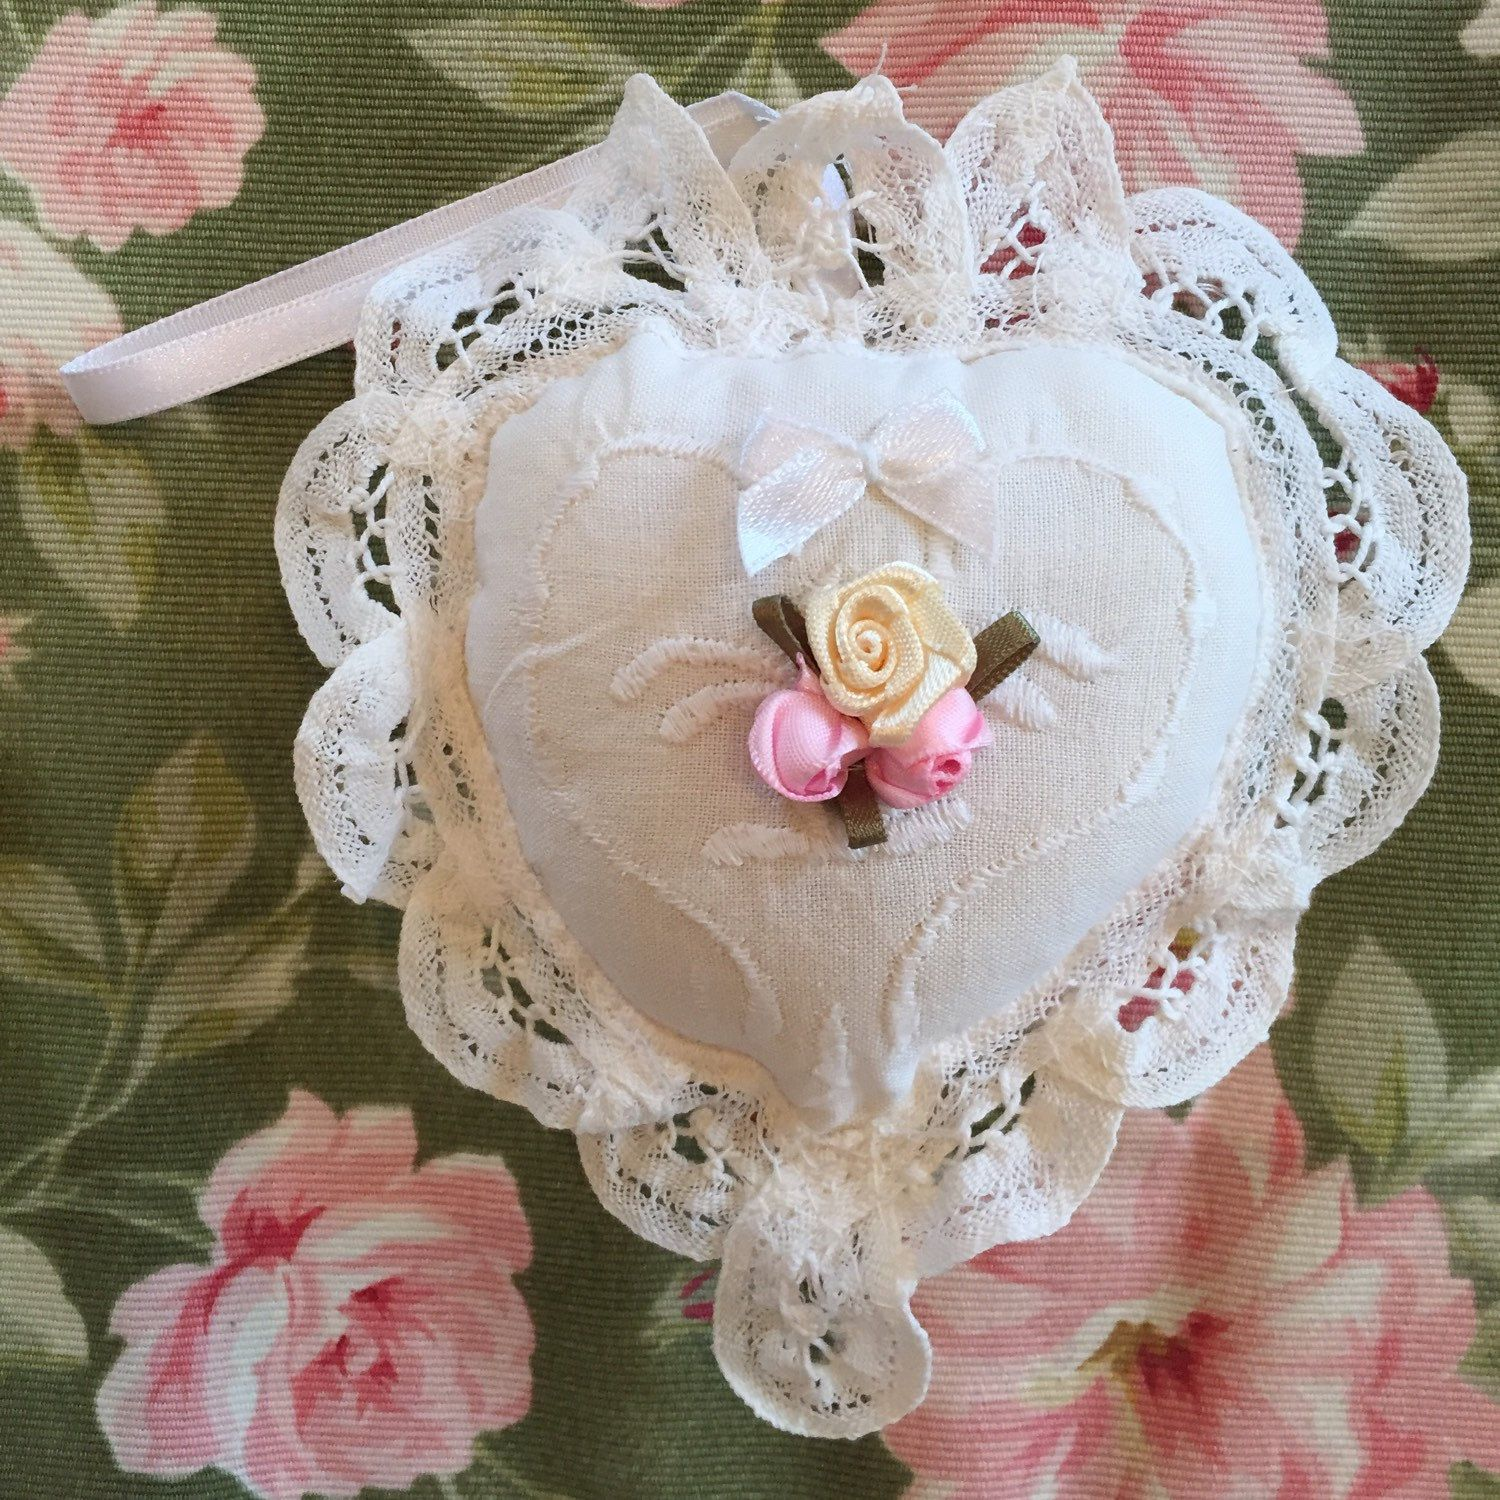 This pillow sachet is ultra feminine and the perfect bridal shower, baby shower or birthday gift!